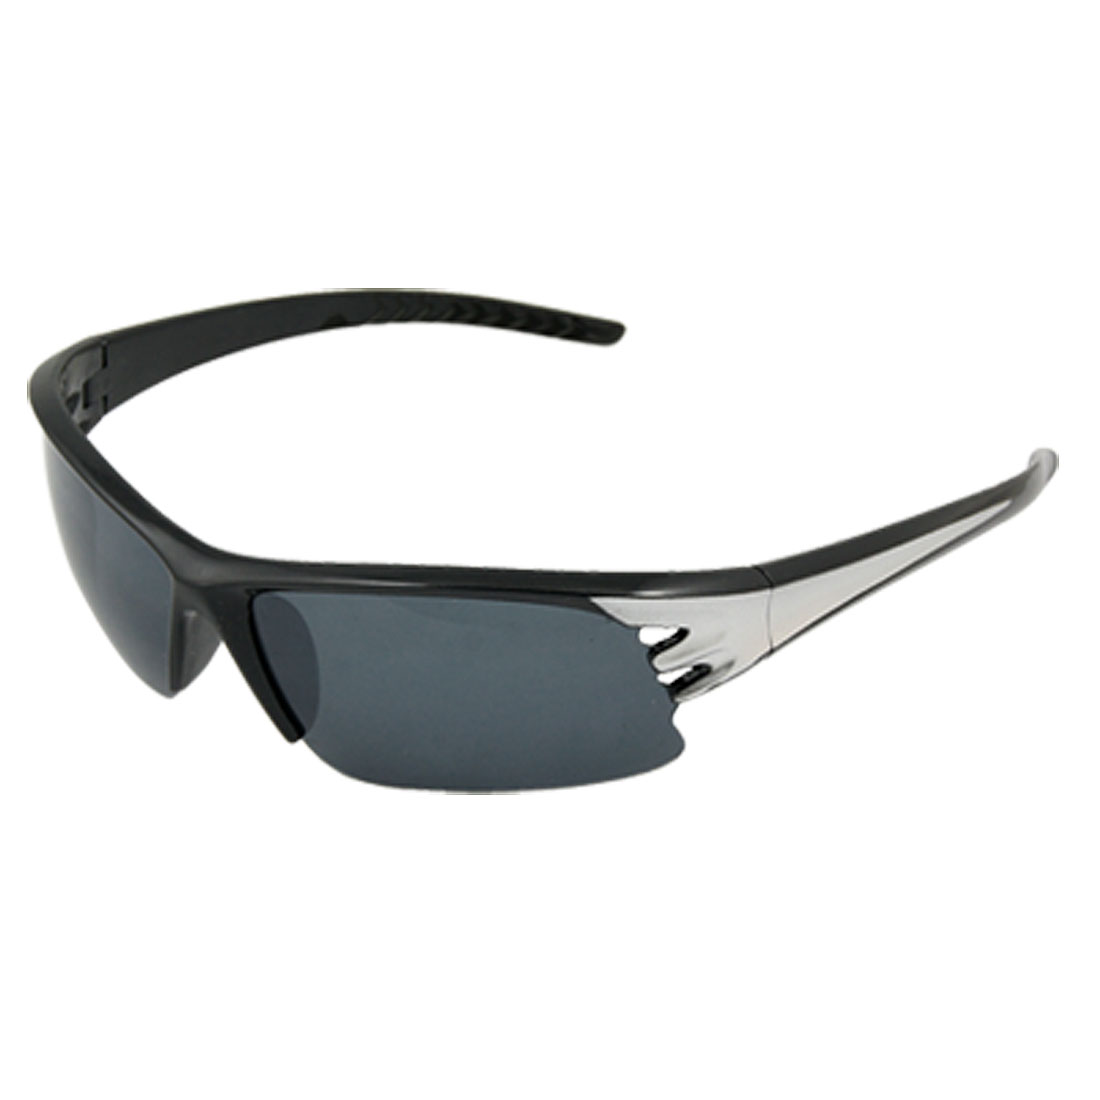 Unisex Plastic Sports Style Hollow Out Sunglasses Black